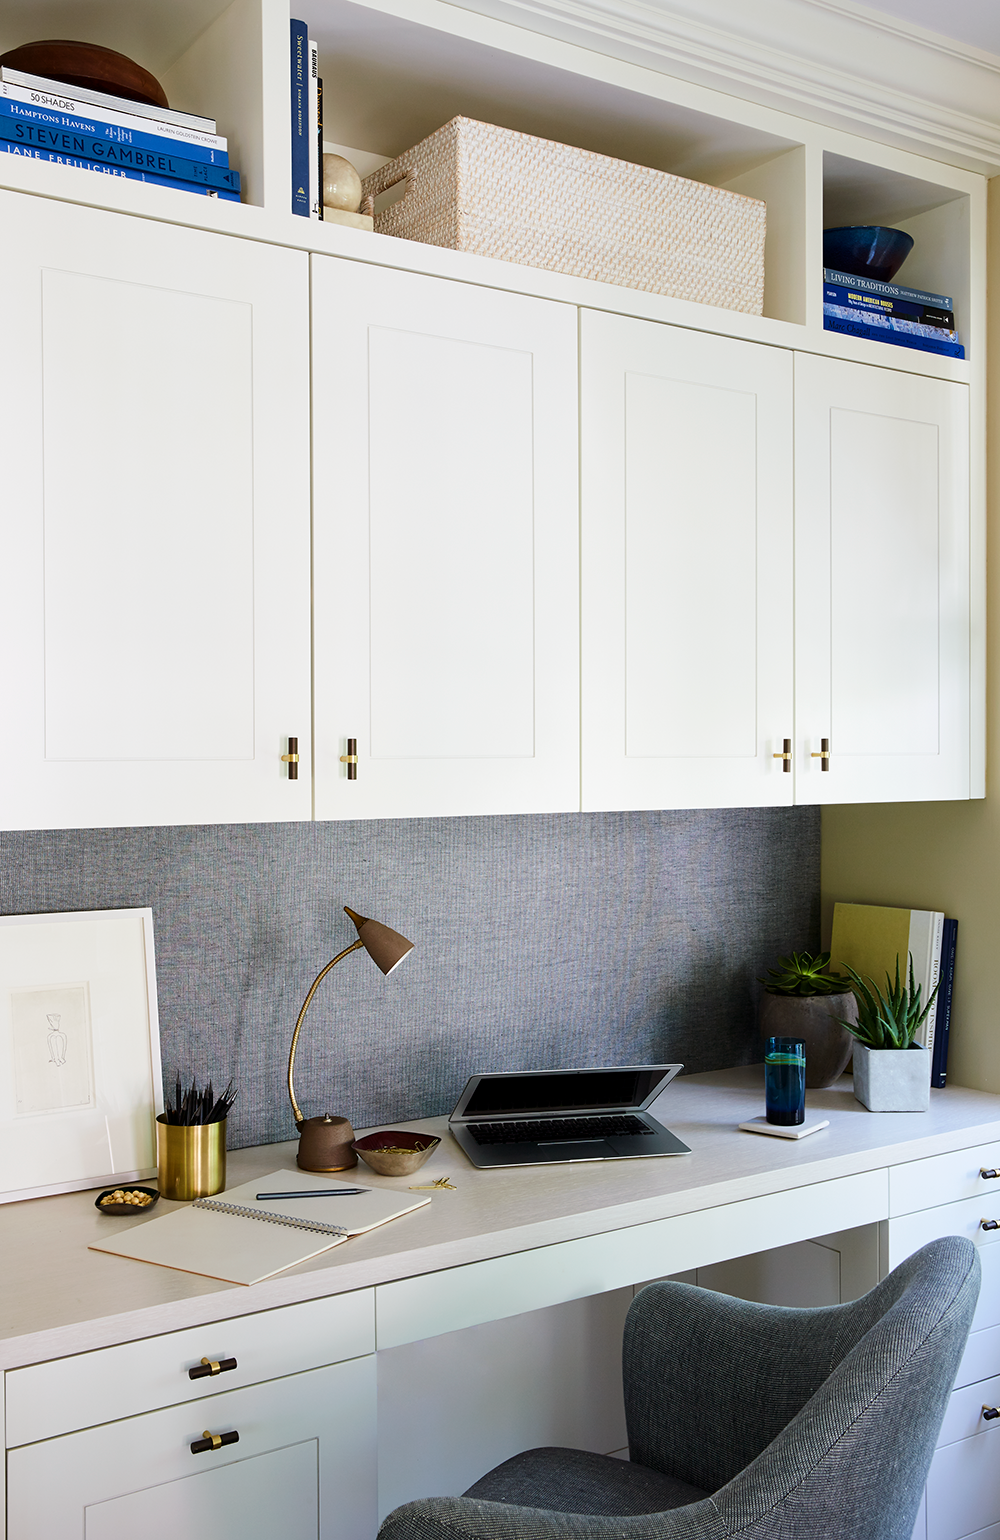 J. Patryce Design custom-designed the cabinetry for the office nook, pictured above.